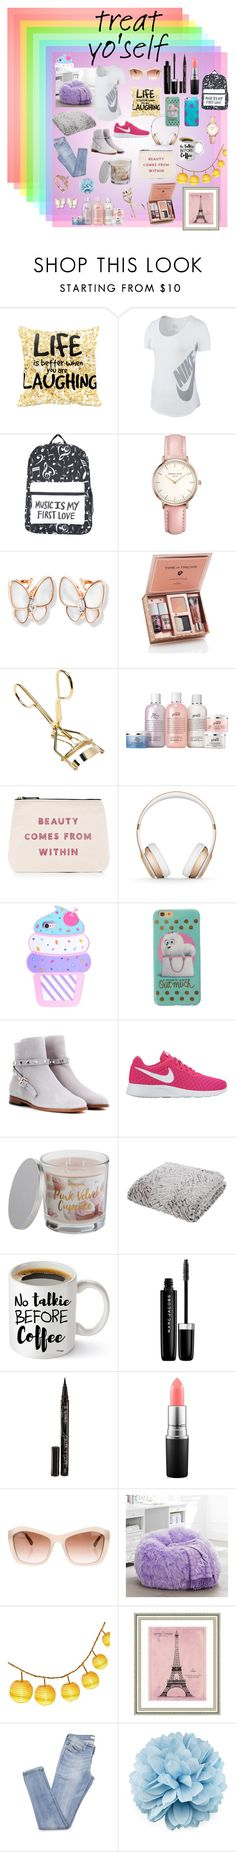 """""""Treat yo'self"""" by dougging ❤ liked on Polyvore featuring NIKE, Topshop, ALPHABET BAGS, Beats by Dr. Dre, Valentino, SONOMA Goods for Life, Marc Jacobs, Smith & Cult, MAC Cosmetics and Chanel"""